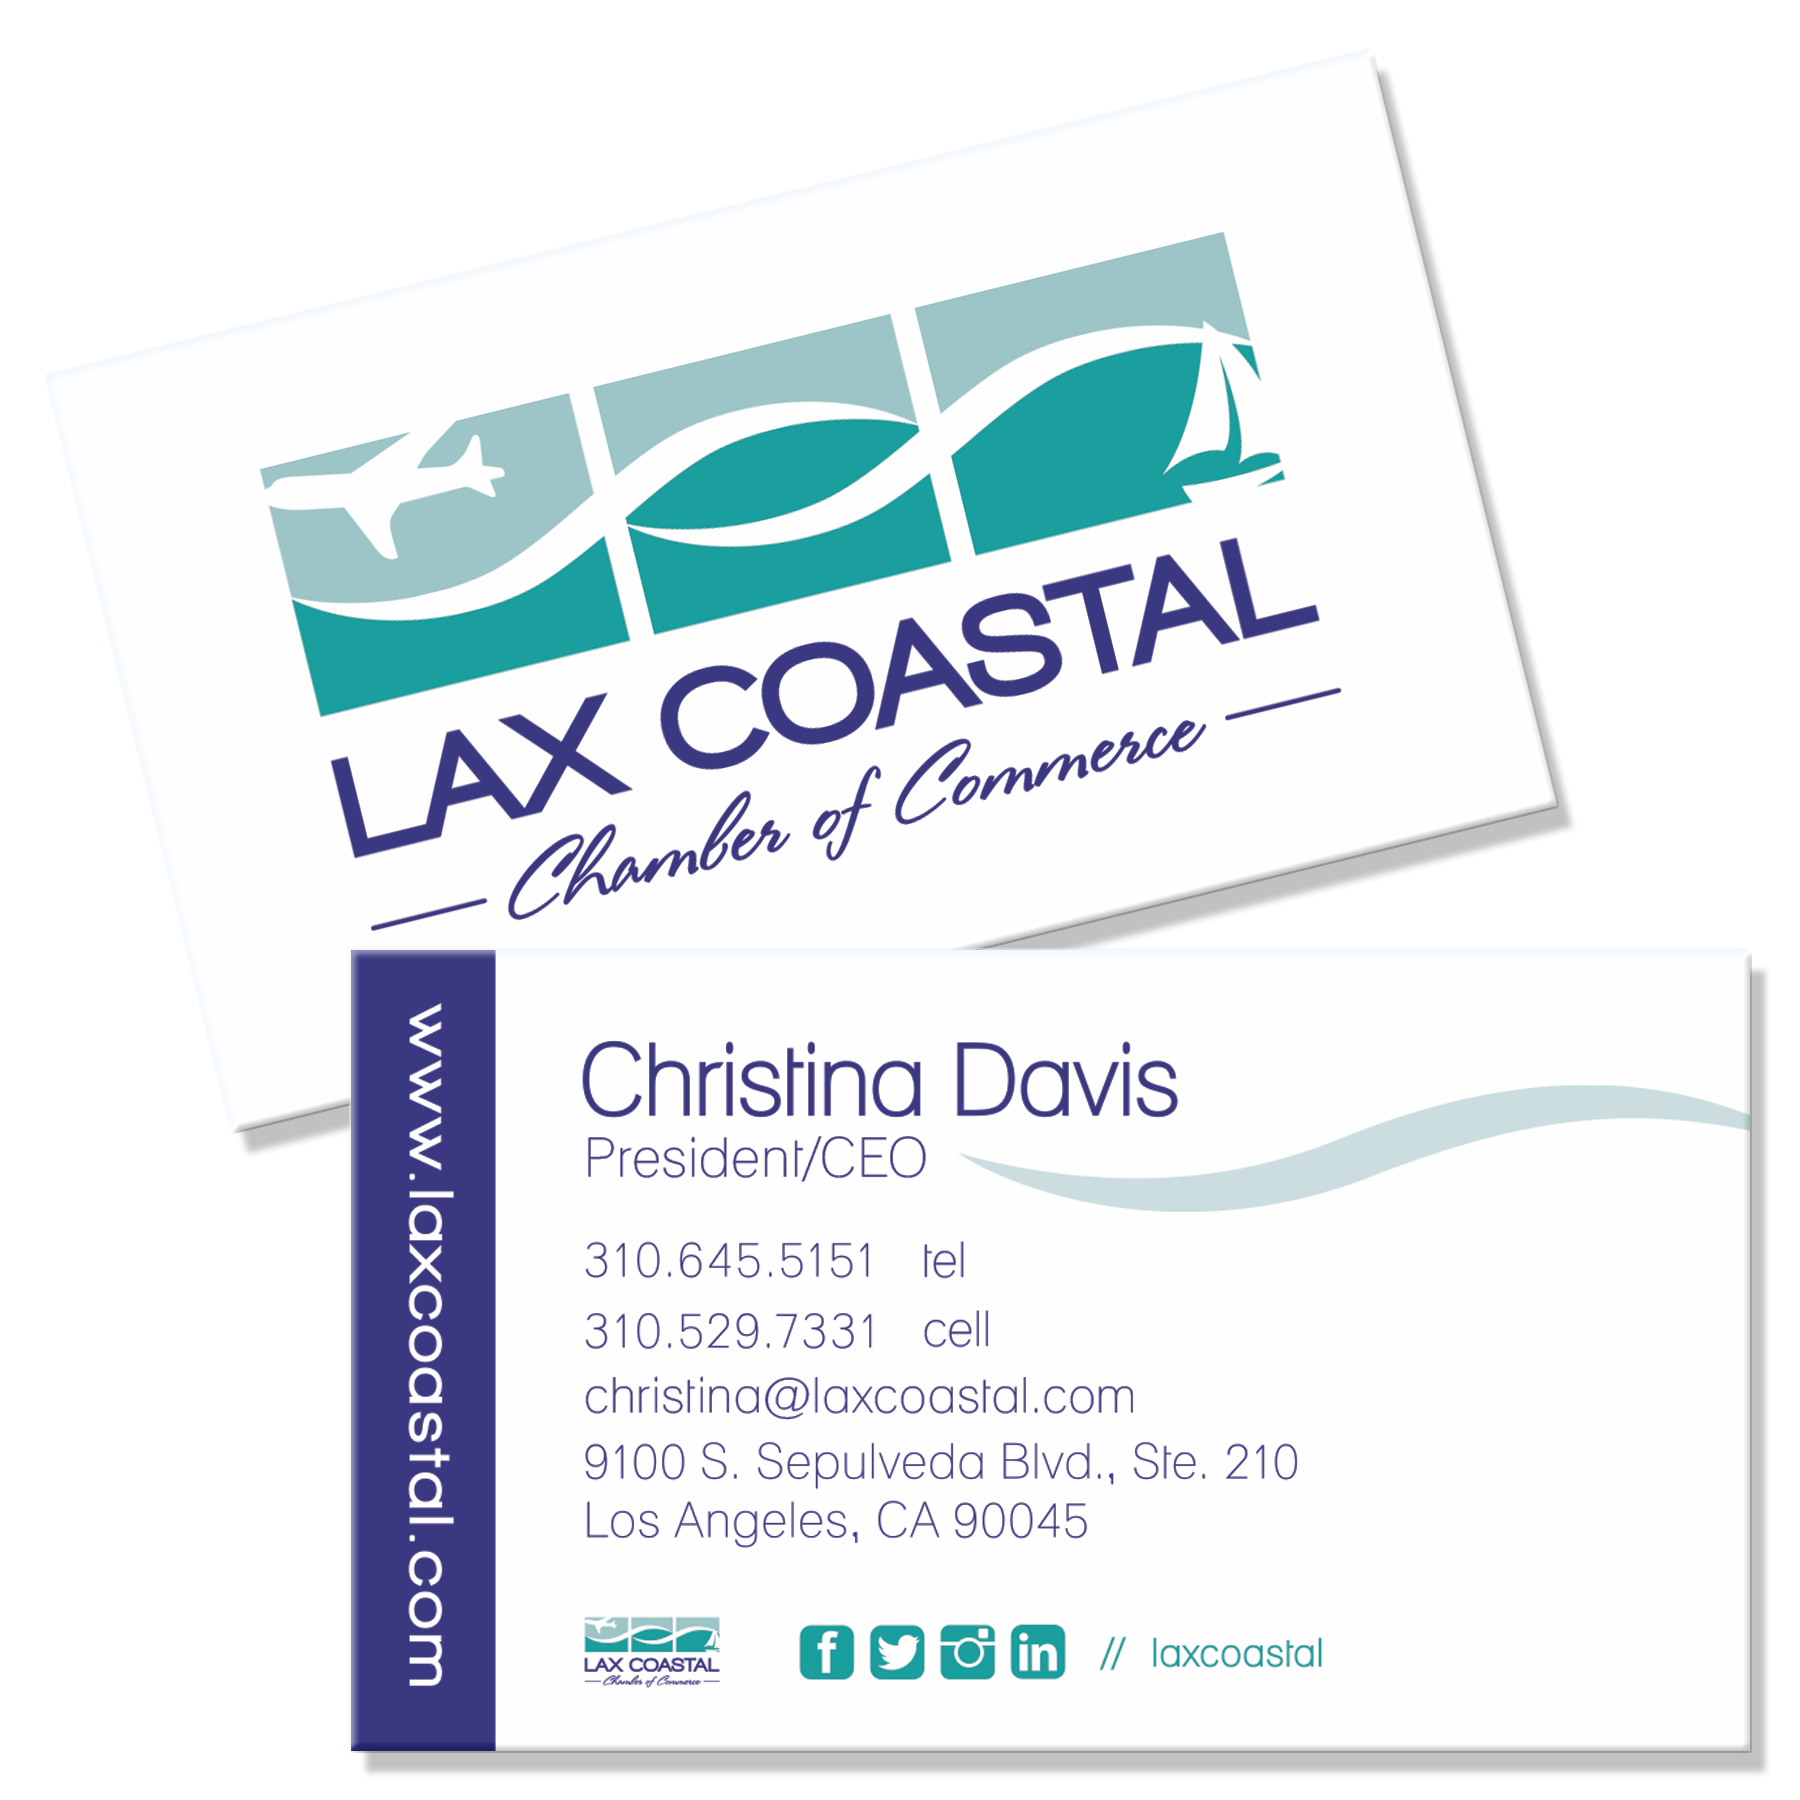 LAX Coastal Chamber Business Cards